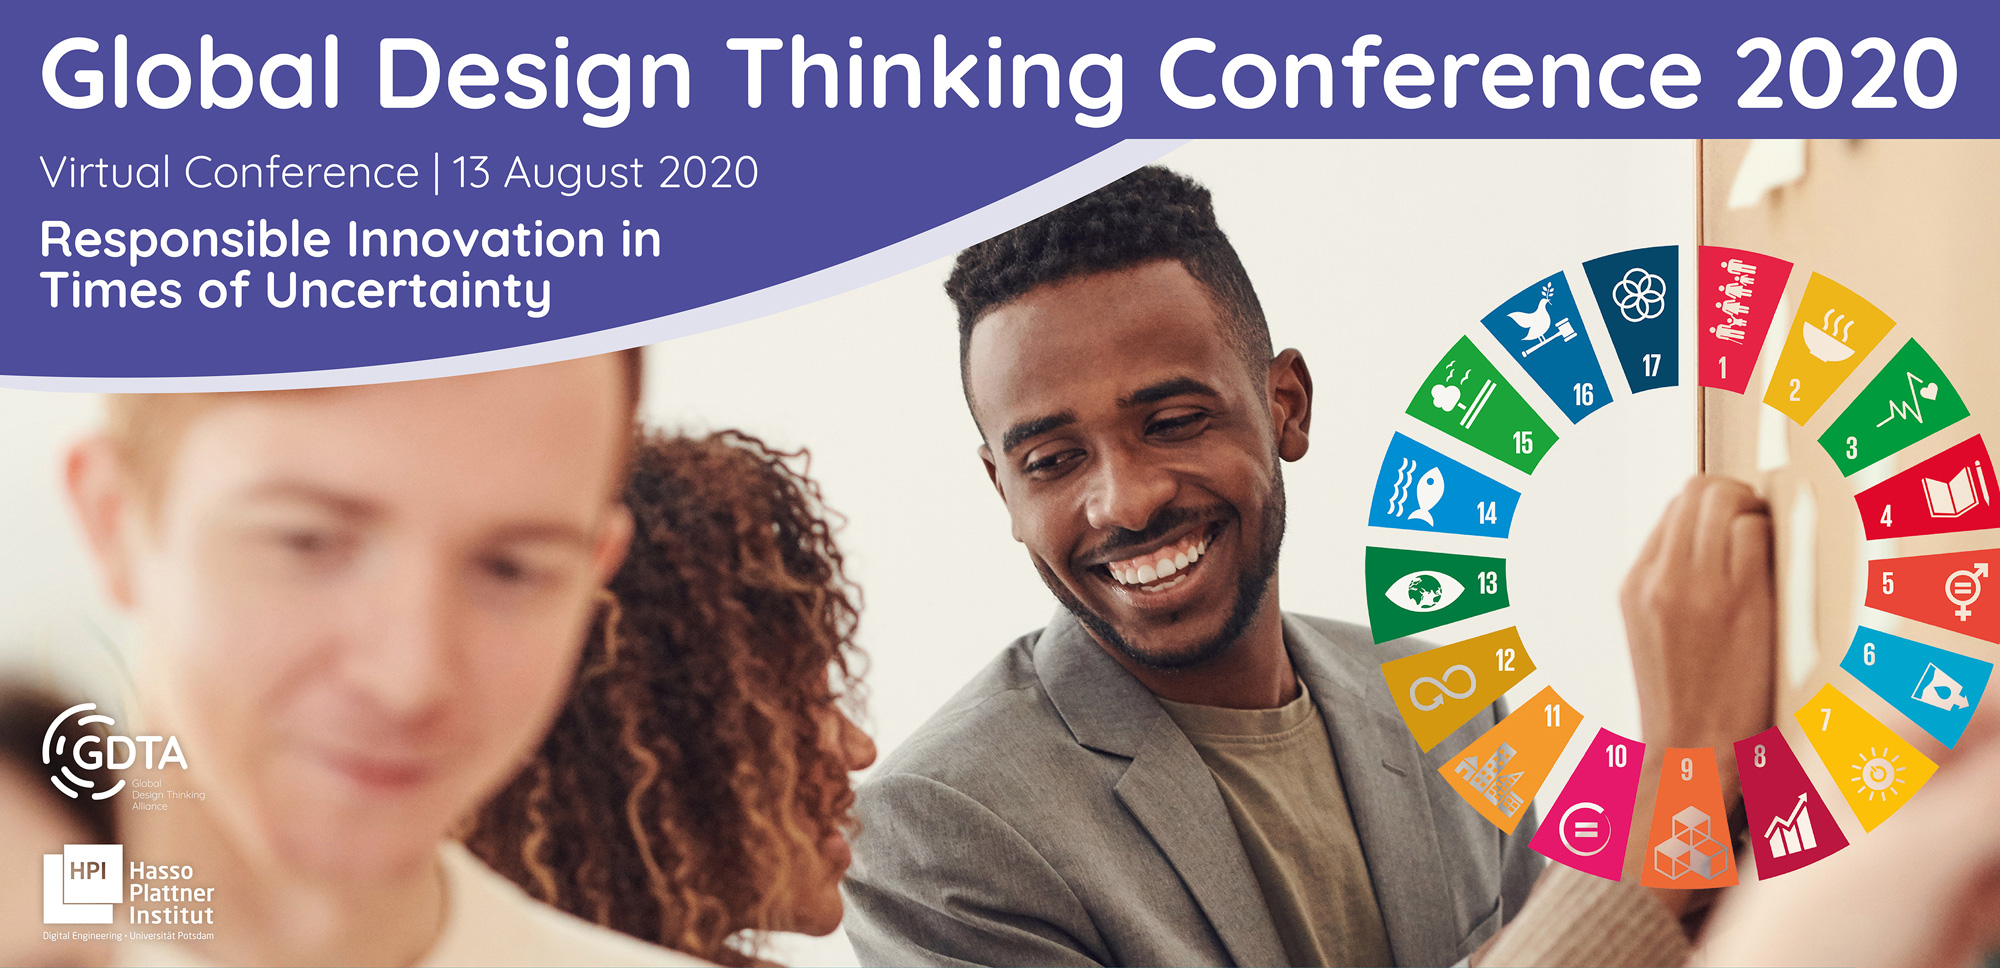 Global Design Thinking Conference 2020